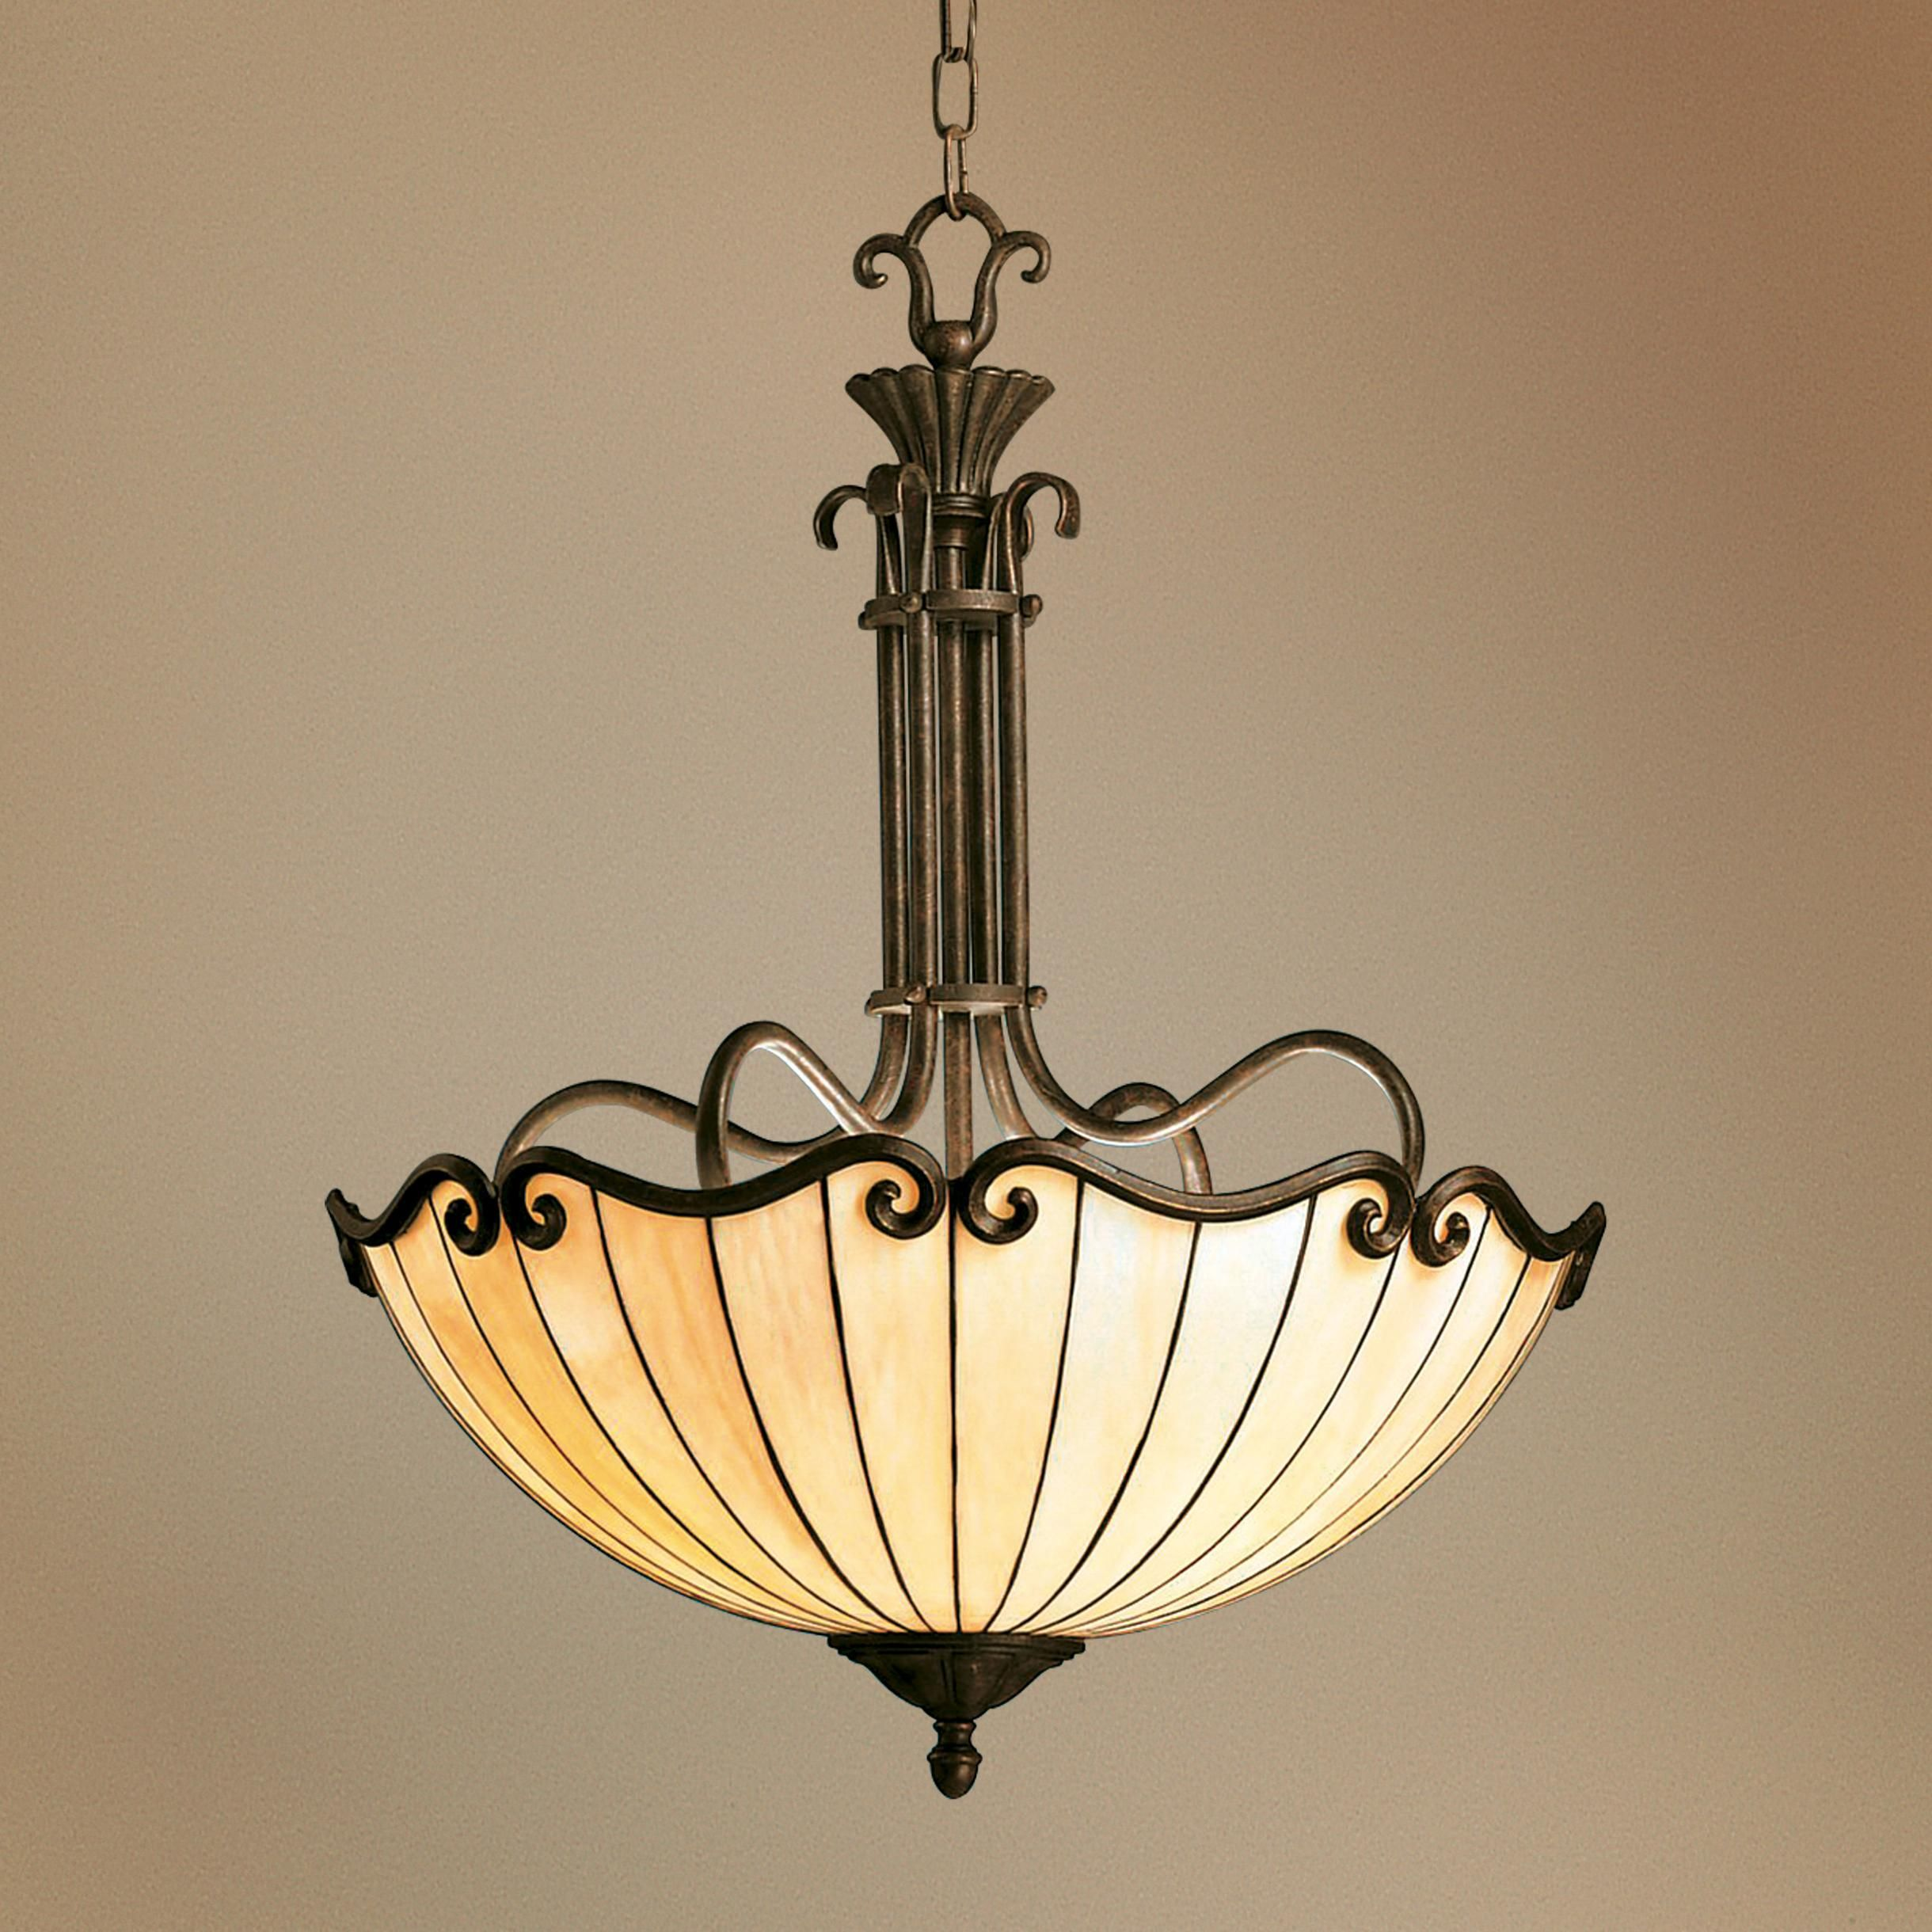 Art Deco Style & Light Art Nouveau Tiffany Style Bowl Chandelier Antique Light